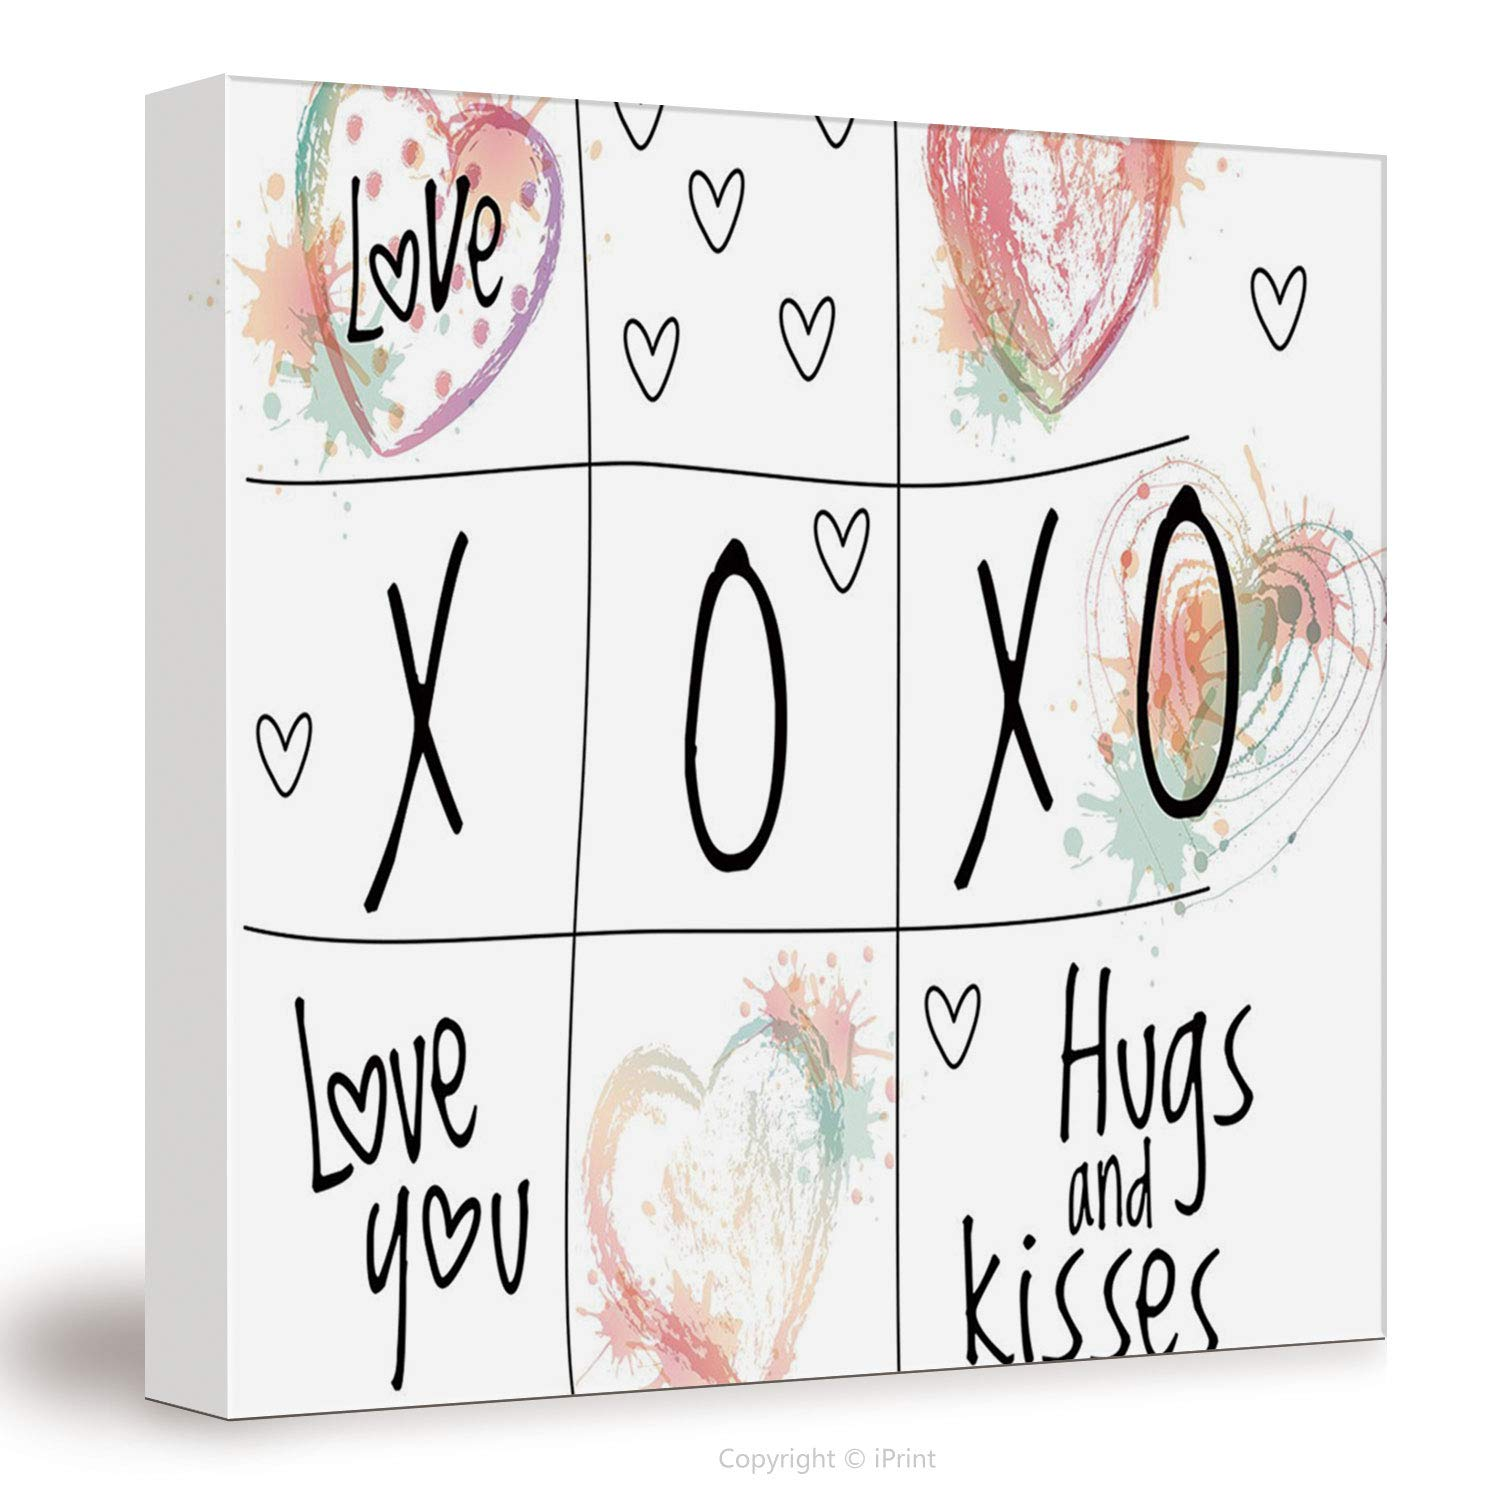 07692 Canvas Art Wall Decor Xo Decor Love You Hugs Kisses Watercolor Splashes Heart Icon Valentines Artwork Decorative Coral Mint Black White Wall Art Paintings On Canvas Stretched And Framed Read Buy Online In Montenegro At